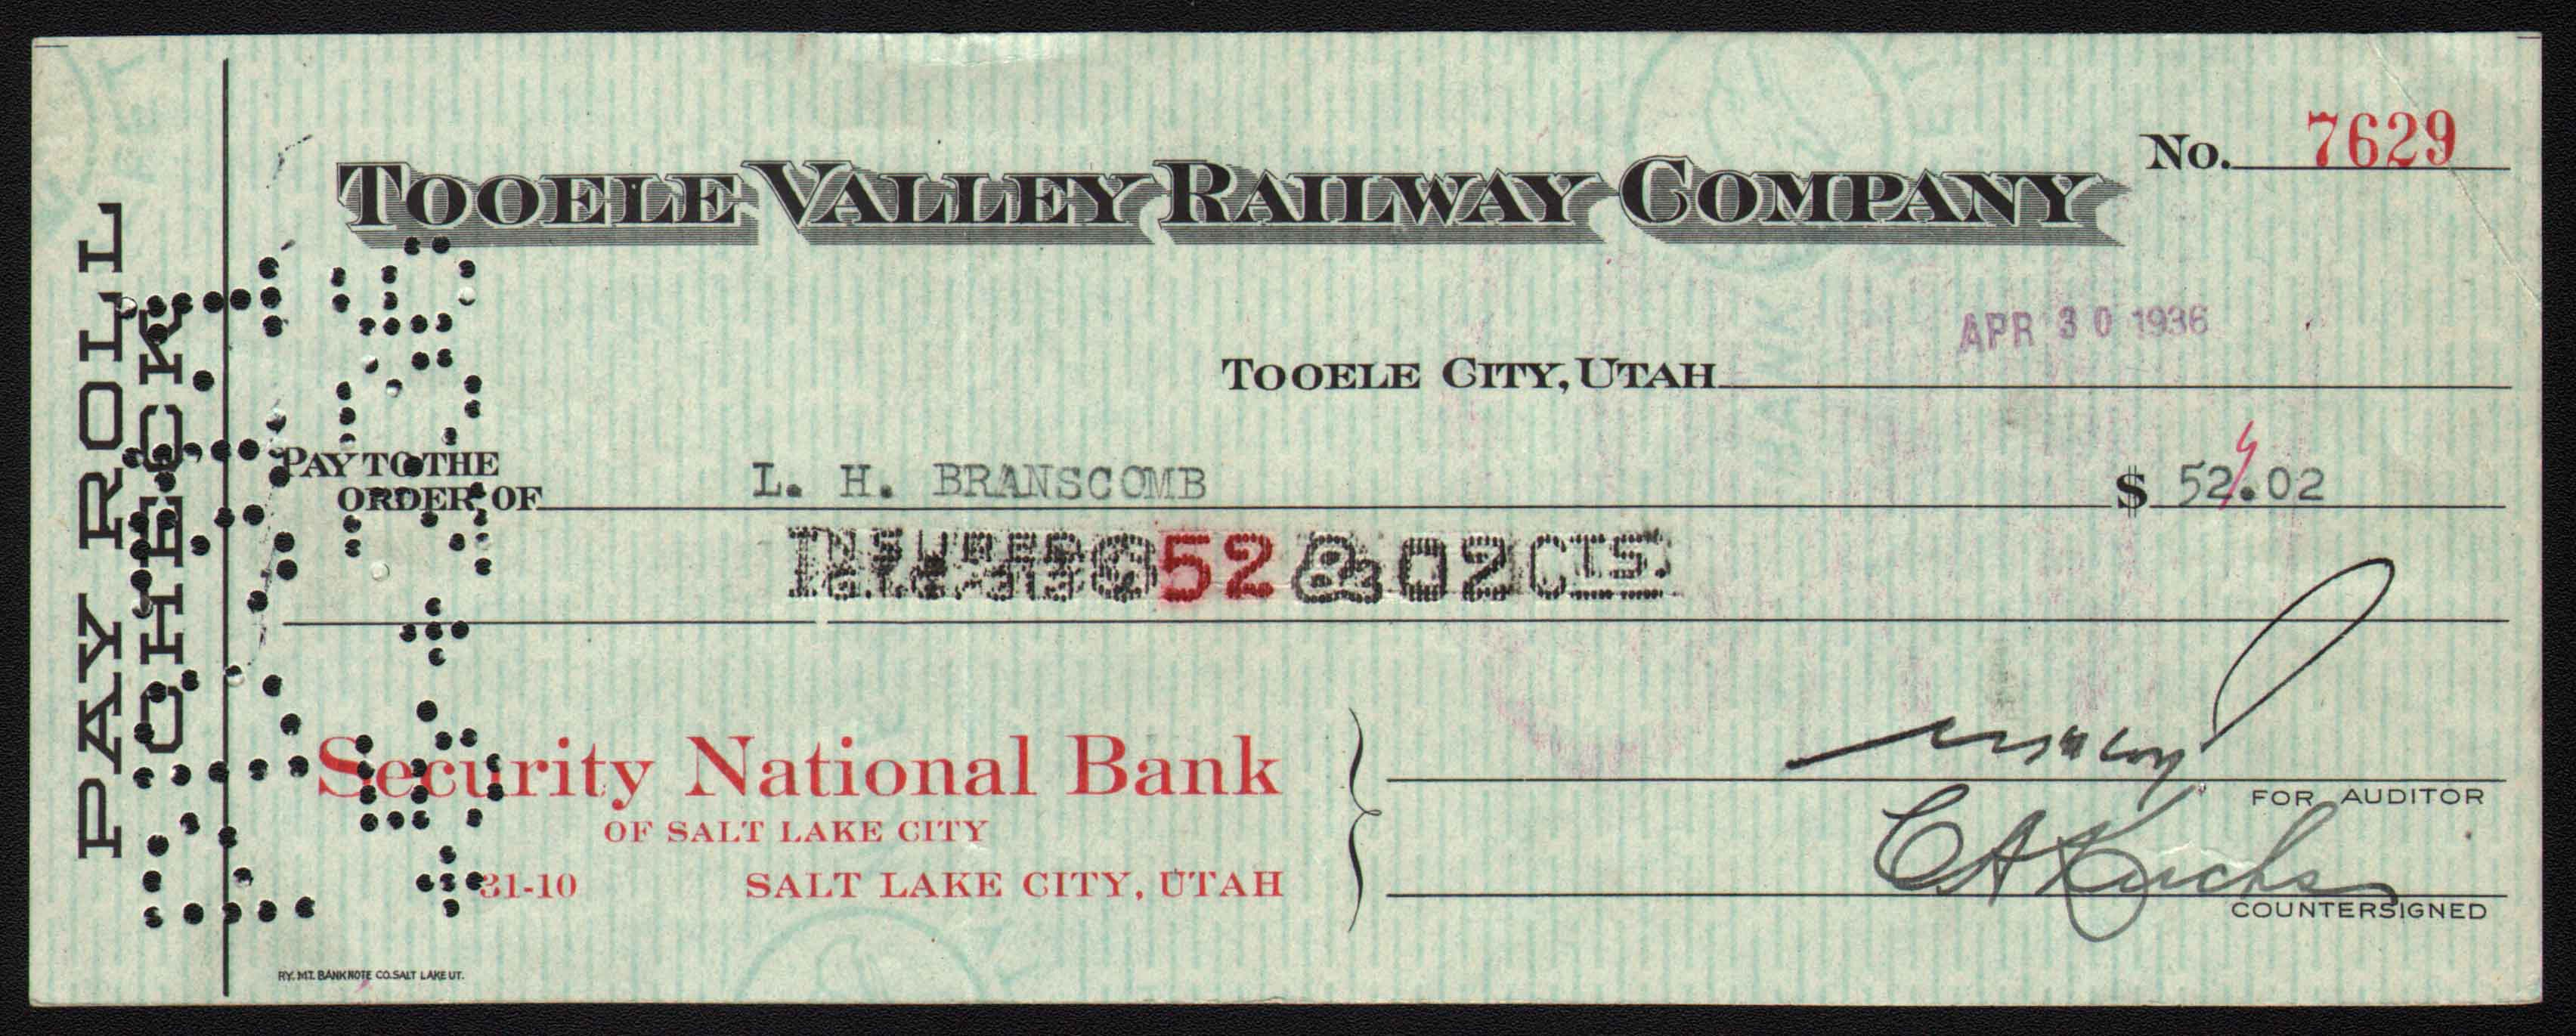 CHECK_-_TOOELE_VALLEY_RR_7629_1936_400_EMBOSS.jpg